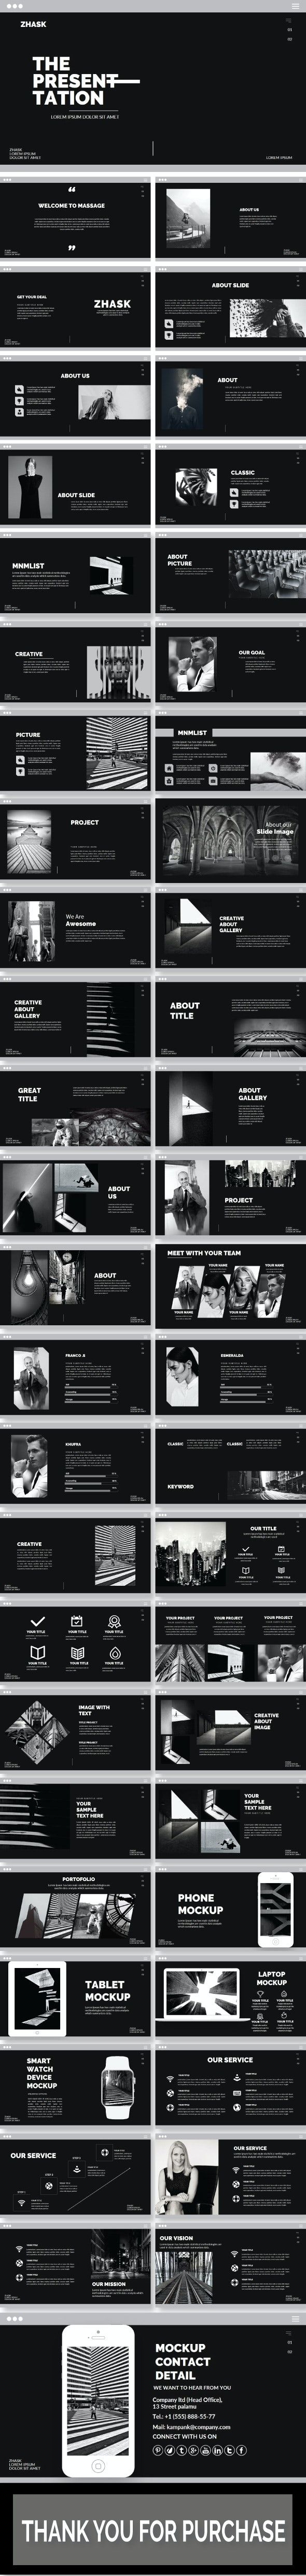 Zhask Presentation Template - Creative PowerPoint Templates